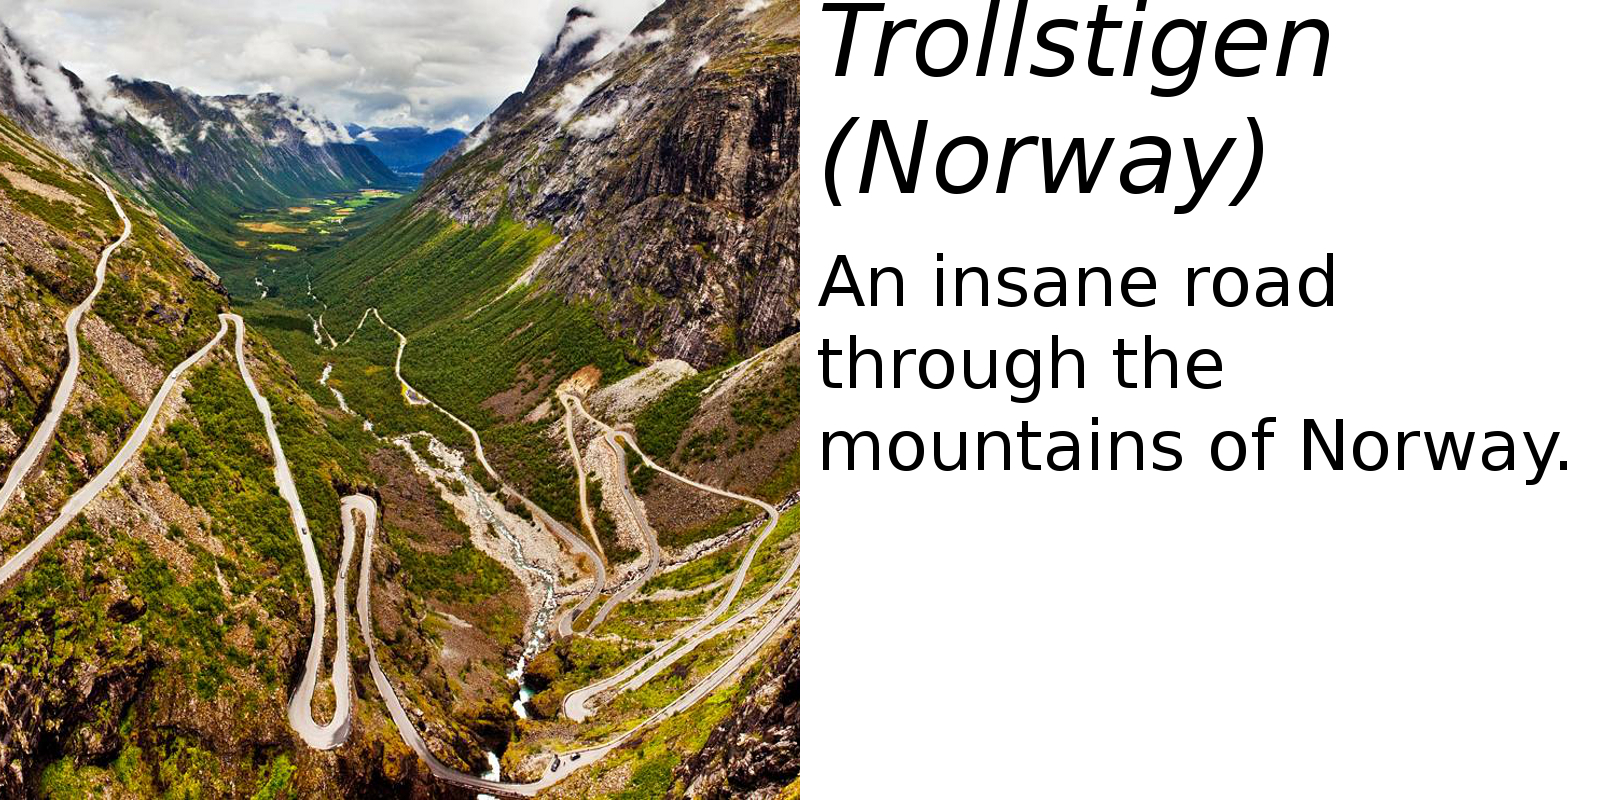 Trollstigen, Norway (description) #2